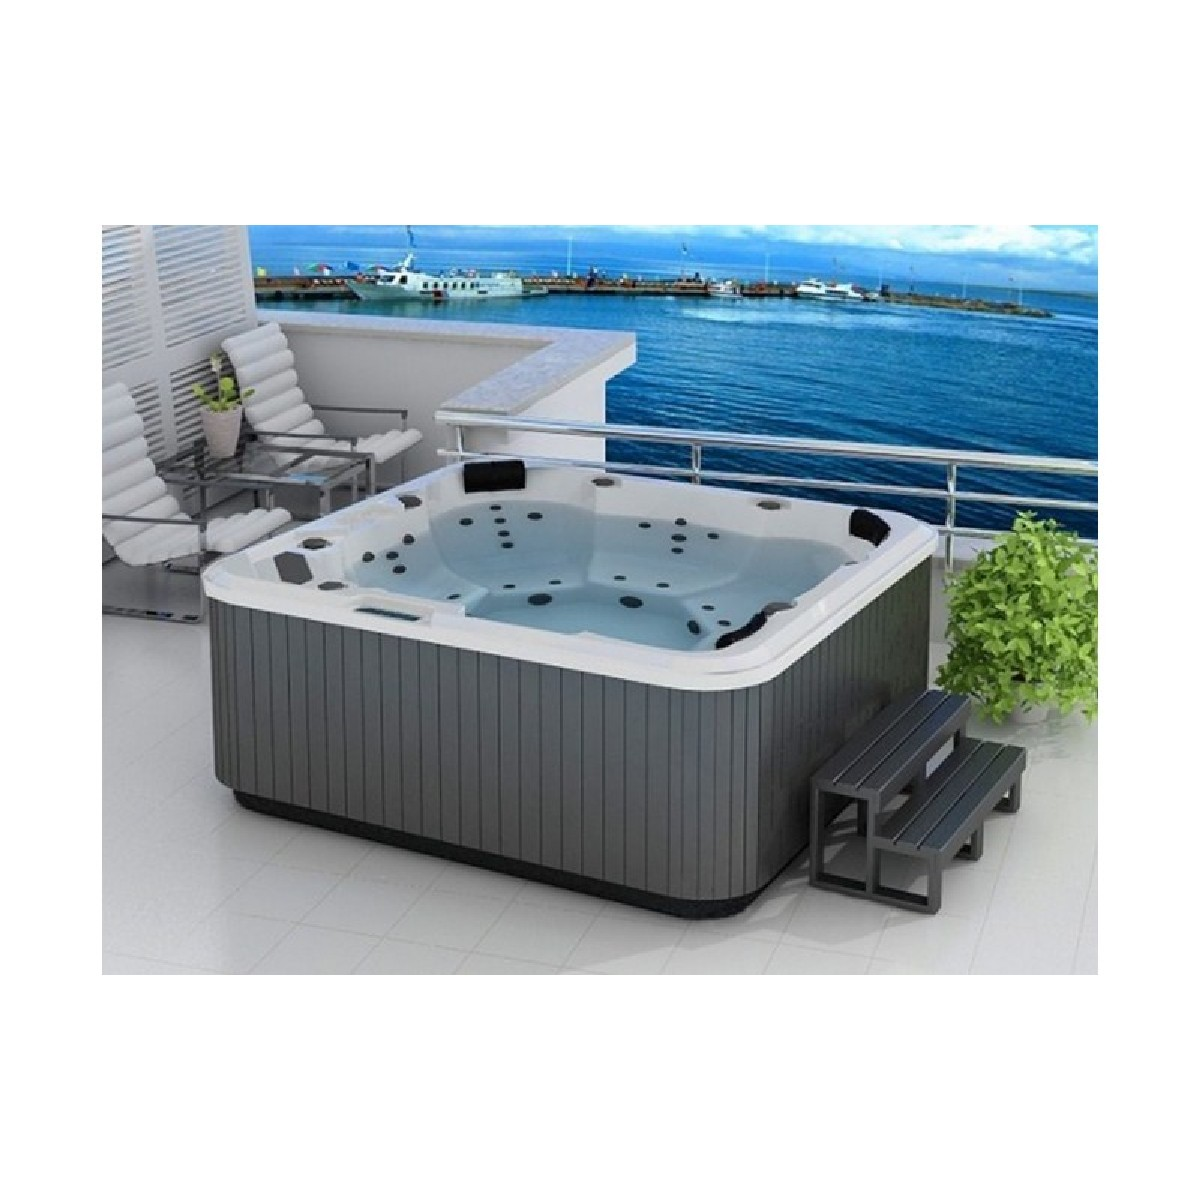 6 Seater Hot Tub - Home and Garden Hot Tub - Atlantic Spa